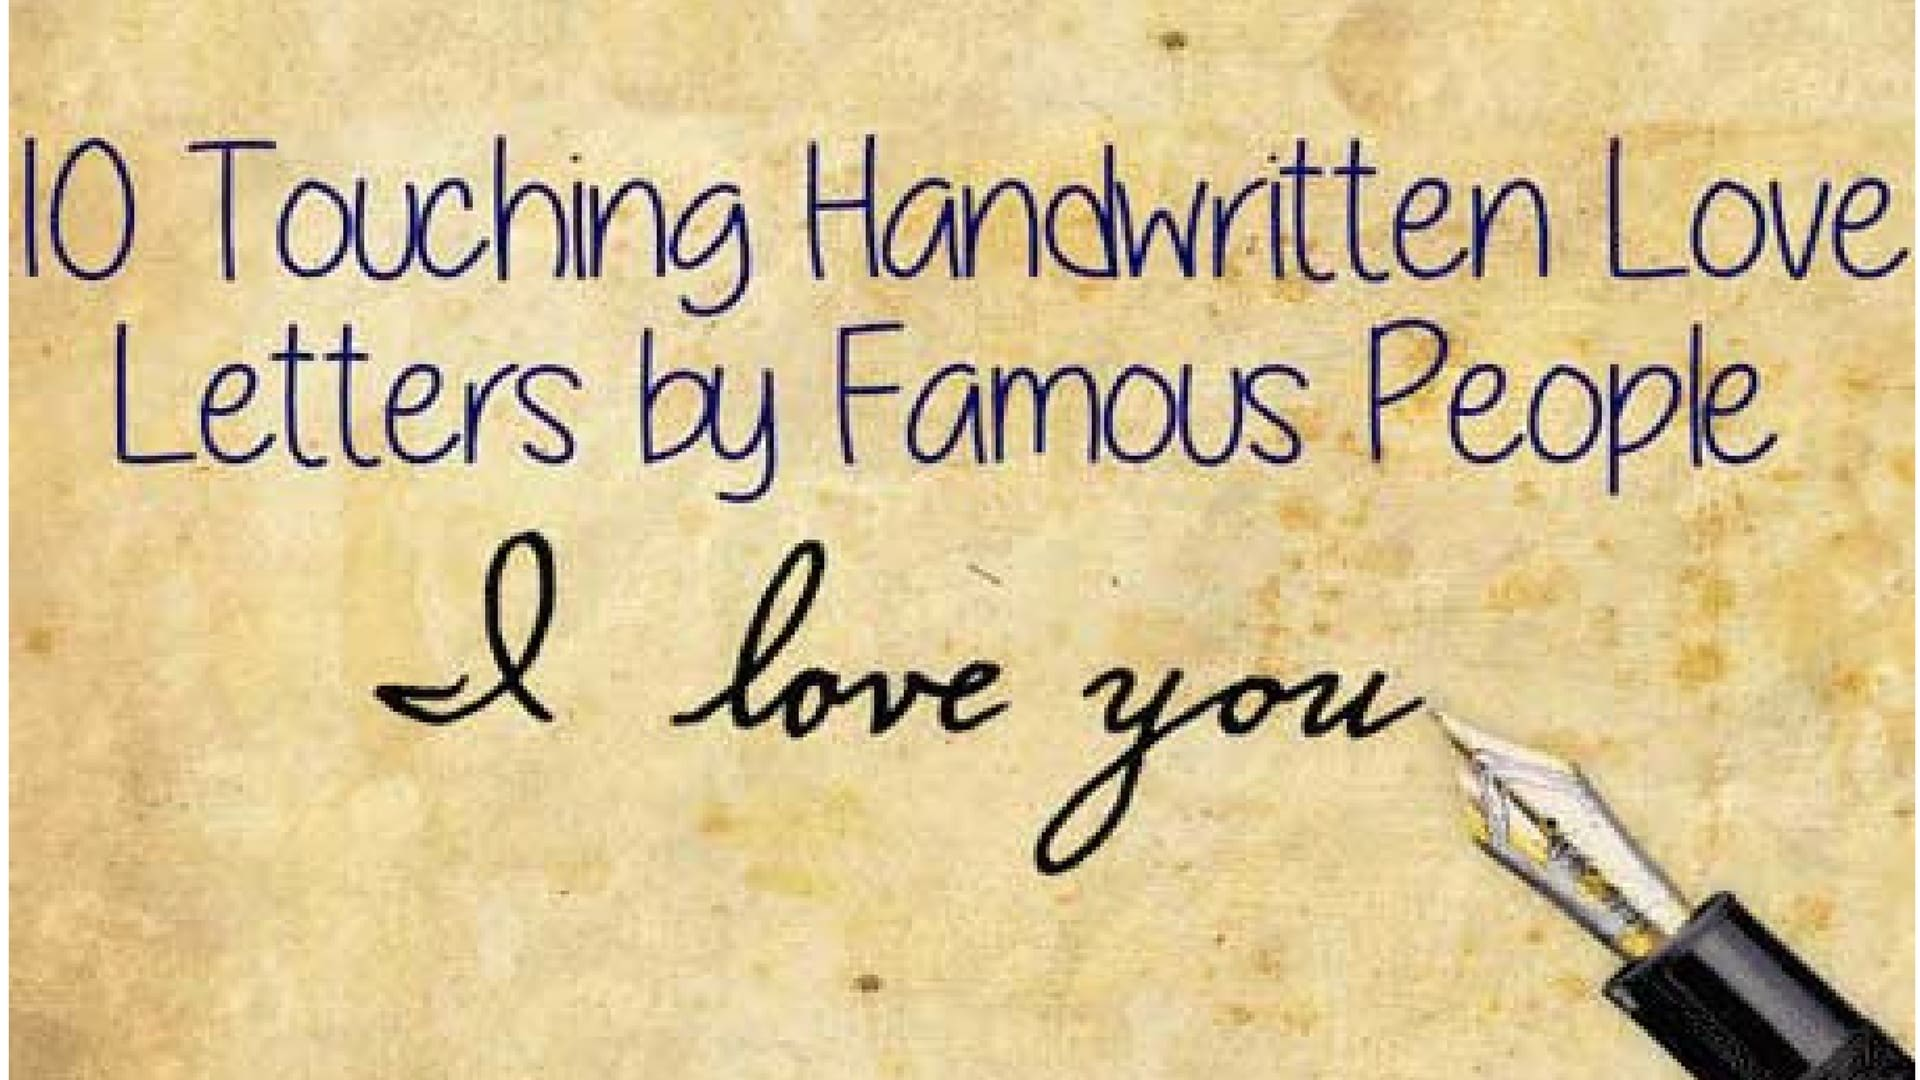 10 Touching Handwritten Love Letters by Famous People - Pens